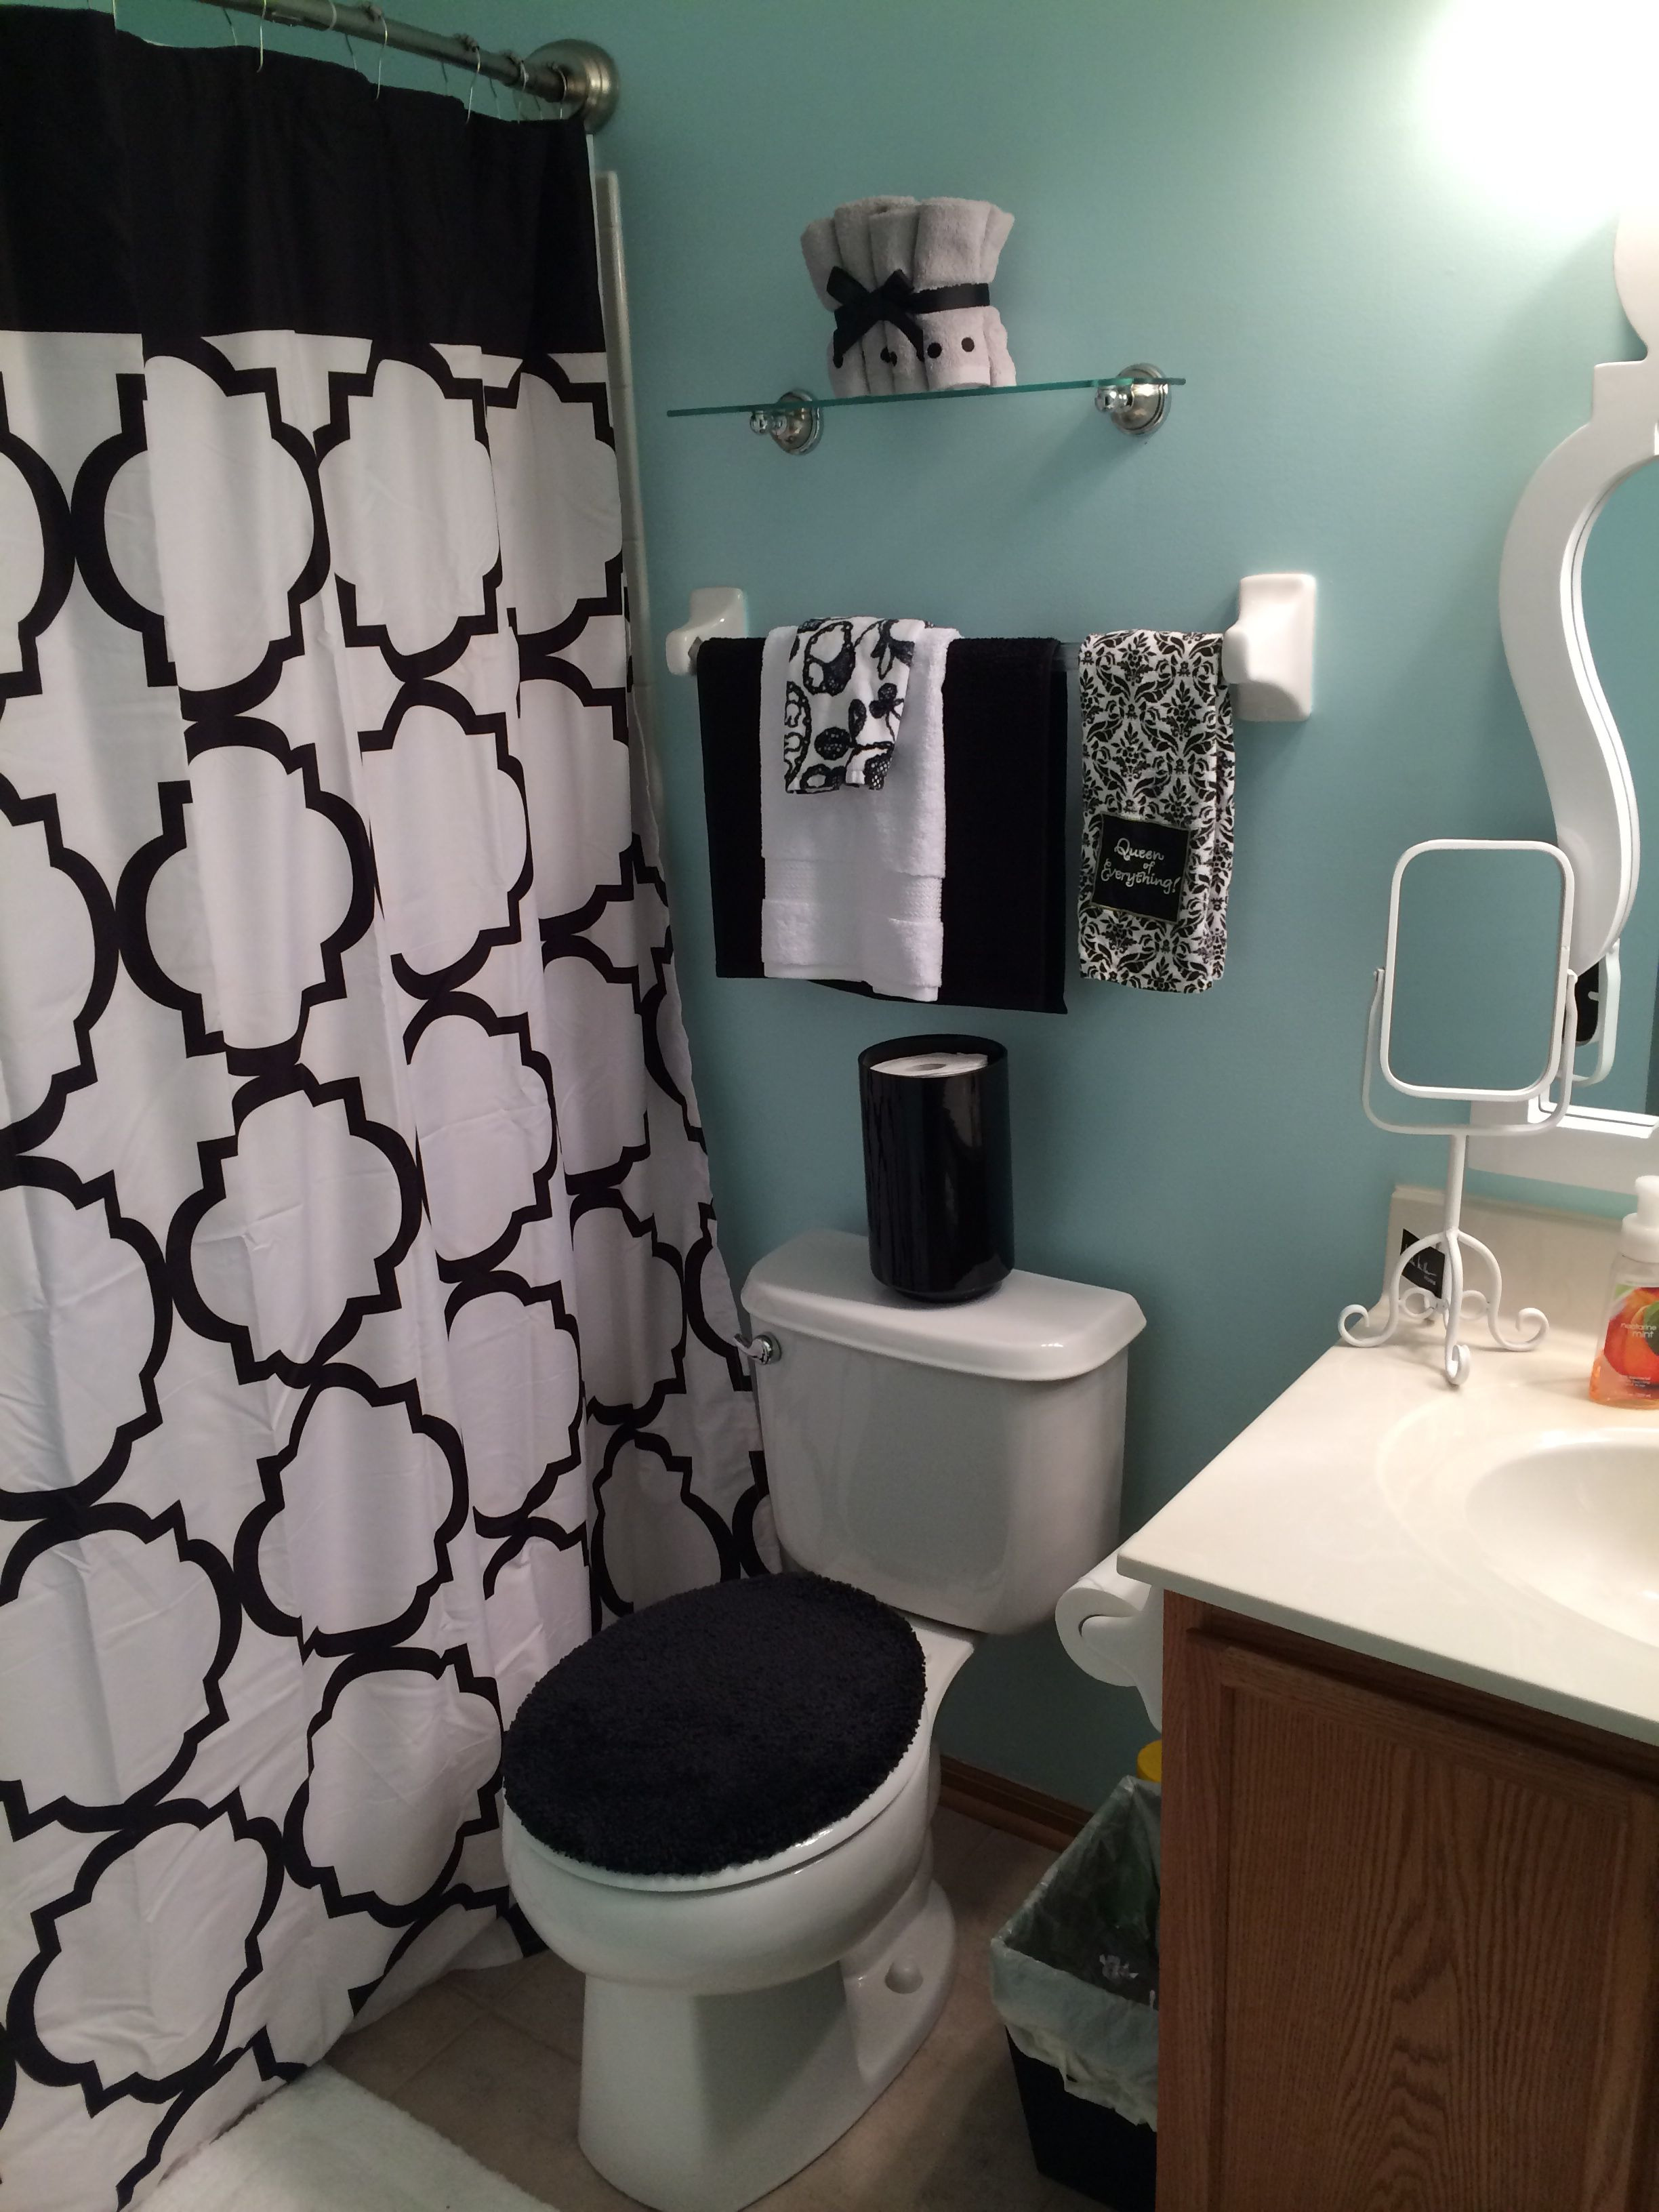 Teenage Bathroom Decor Elegant Express Your Individuality with Boho Home Decor with Images